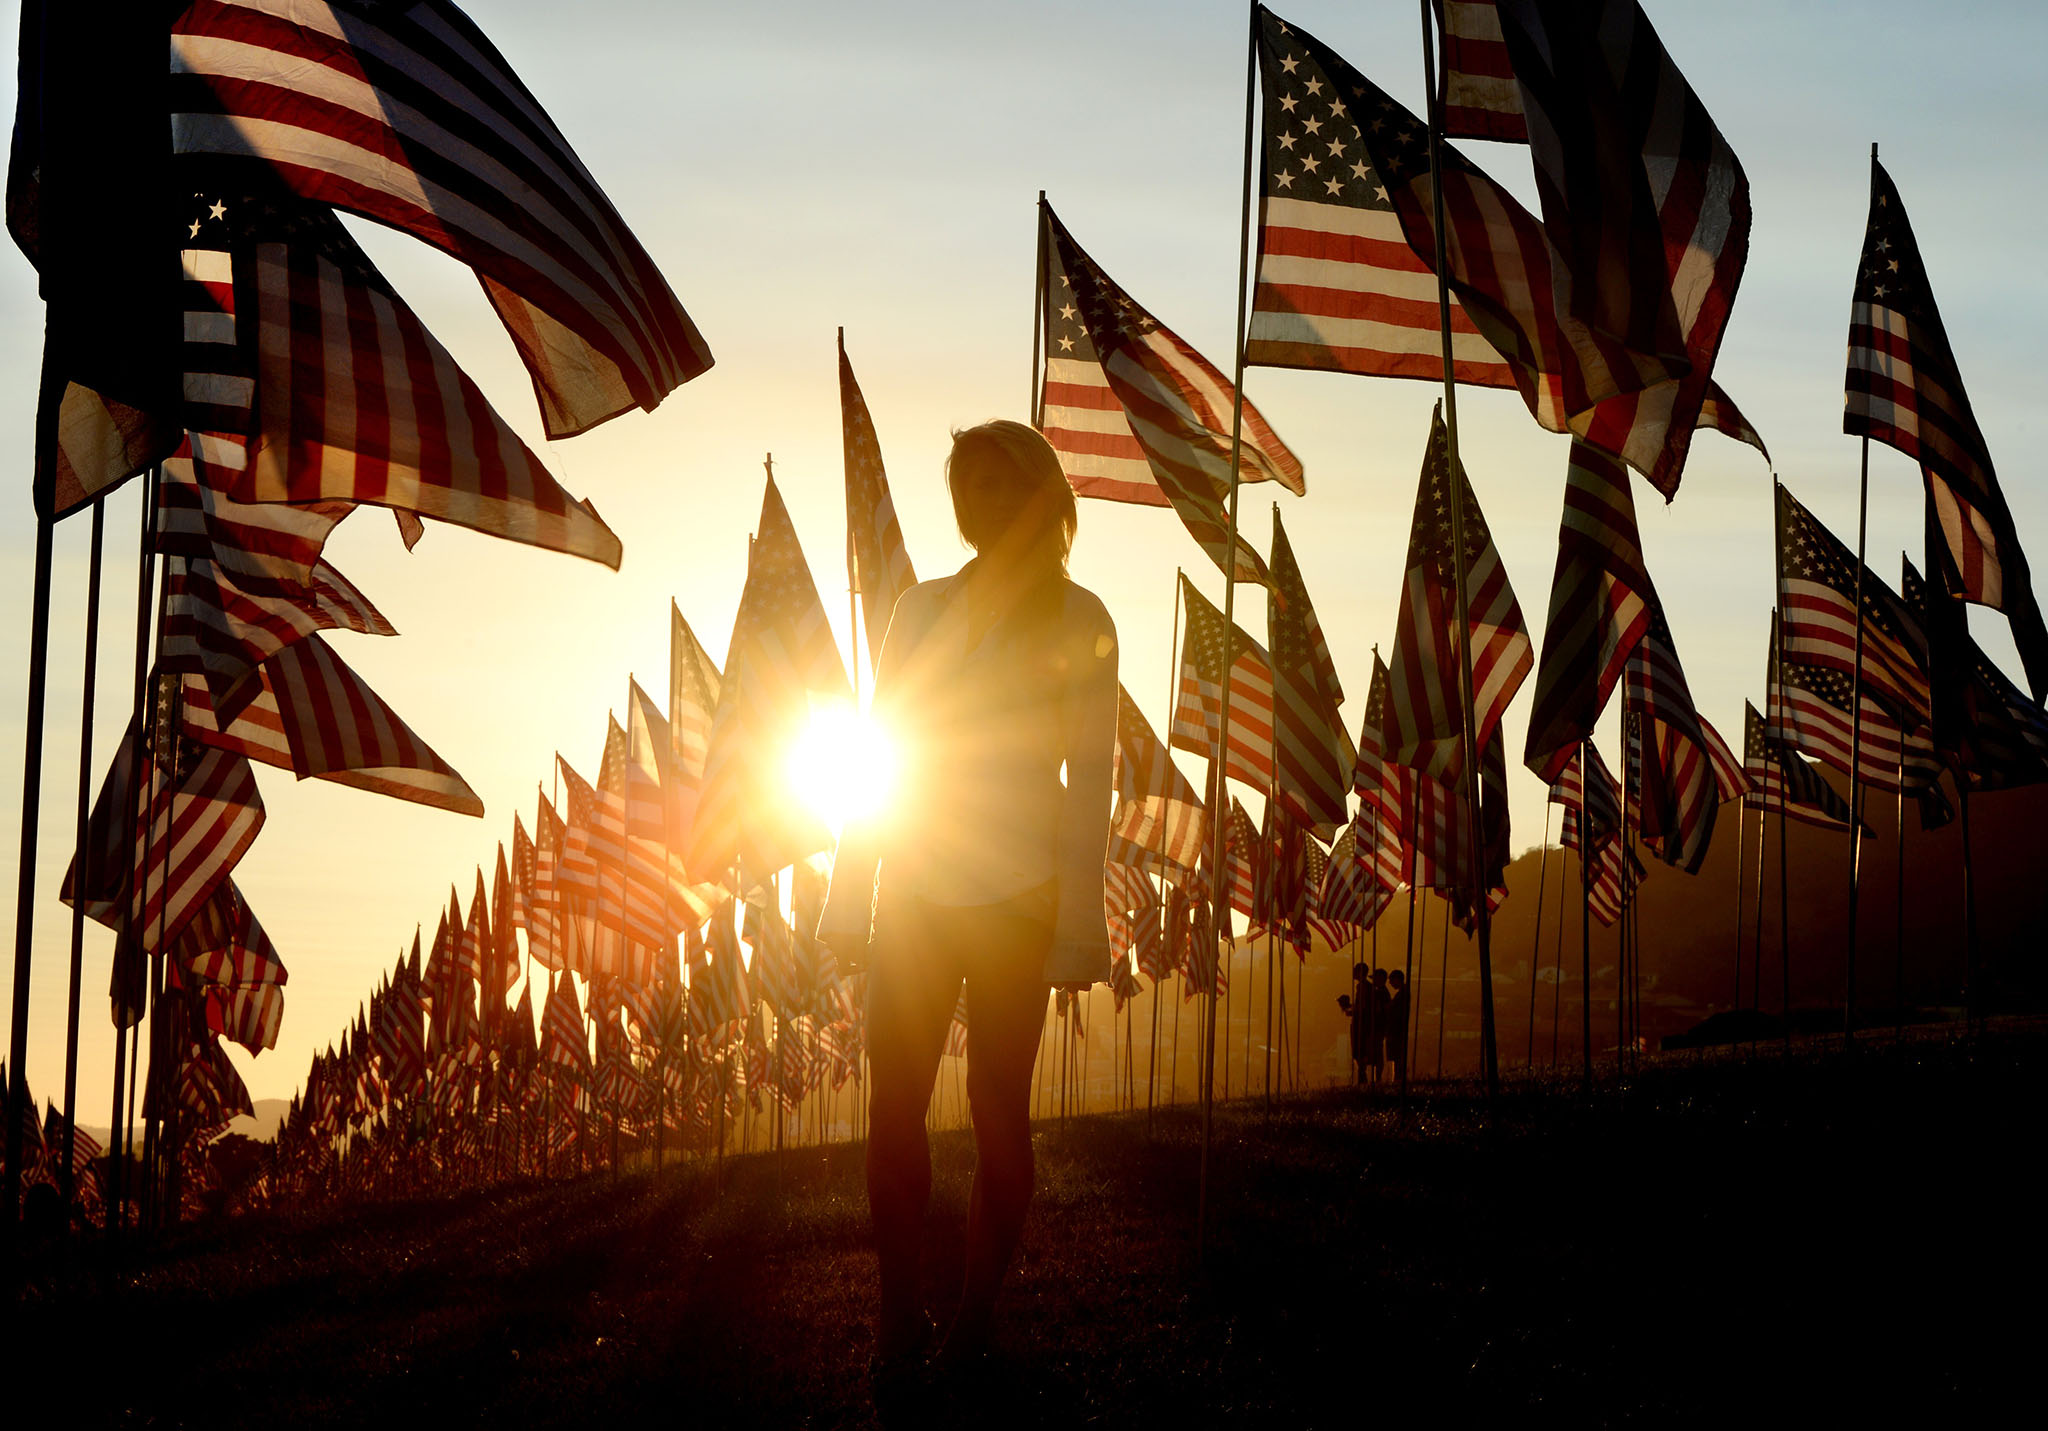 A woman (C) walks amongst US national flags erected by students and staff from Pepperdine University to honor the victims of the September 11, 2001 attacks in Malibu, California on September 9, 2014. The students placed some 3,000 flags in the ground in tribute to the nearly 3,000 victims lost in the attacks almost 13 years ago. AFP PHOTO / Mark RALSTONMARK RALSTON/AFP/Getty Images